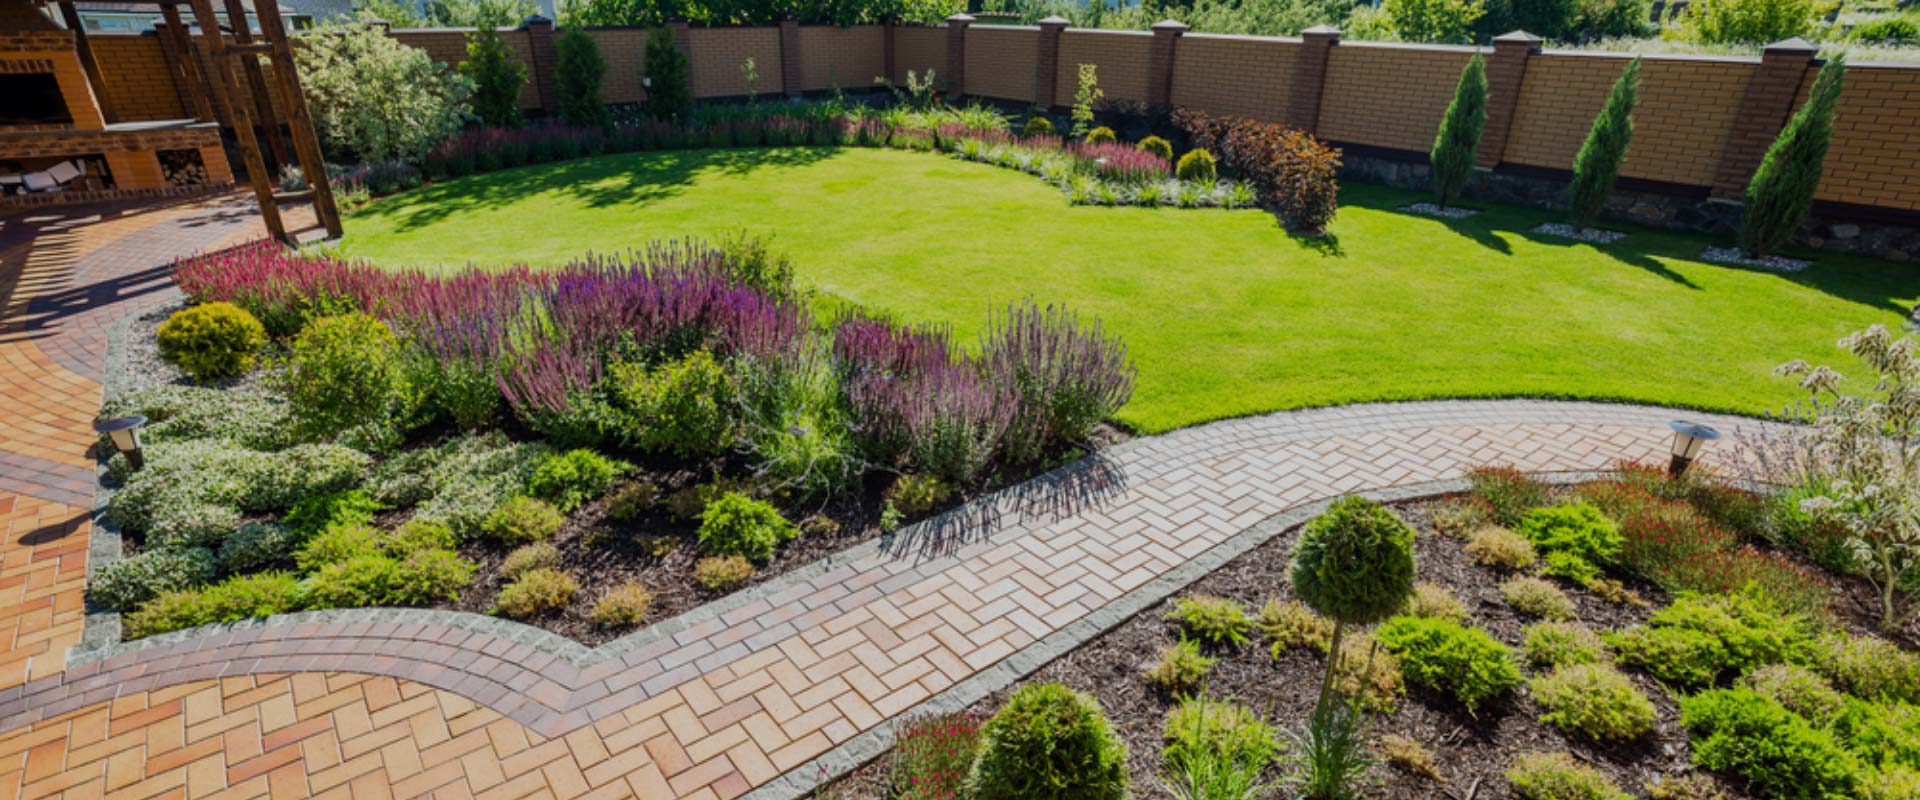 Block Paving, Driveways, Patios and Landscaping